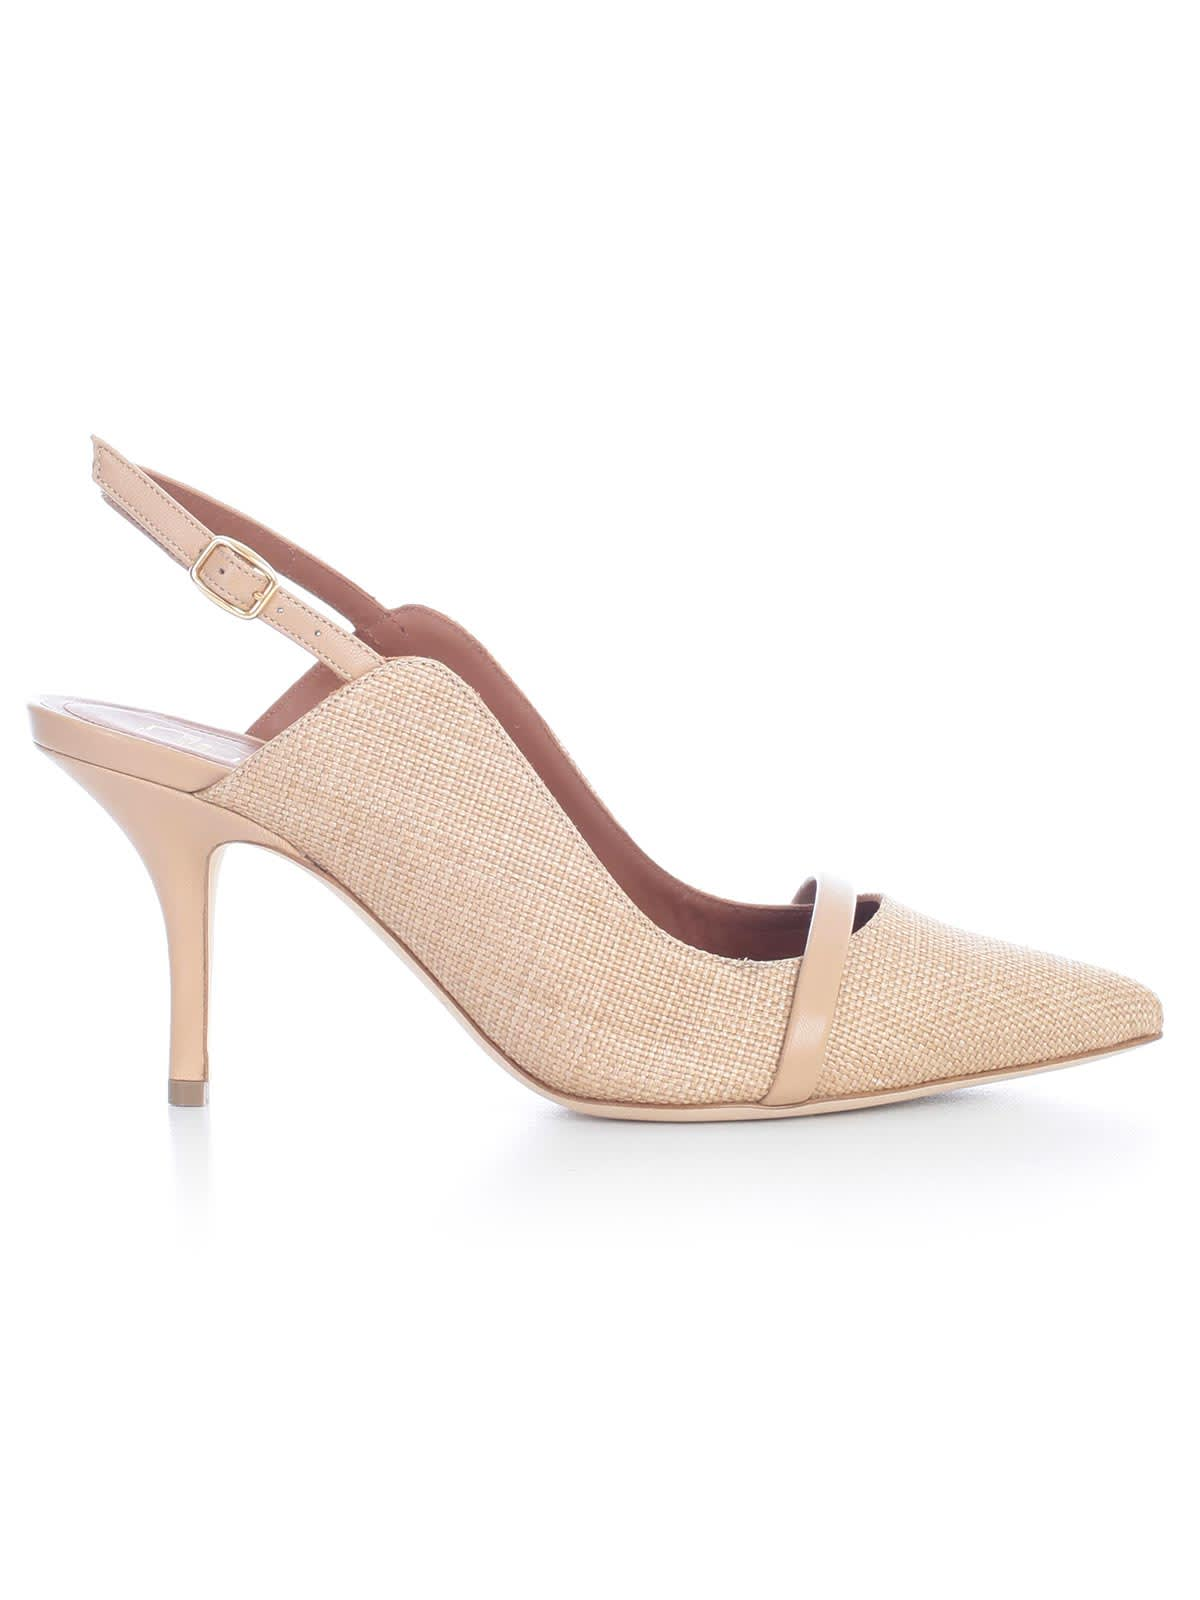 Malone Souliers Marion Pumps Raffia And Nappa